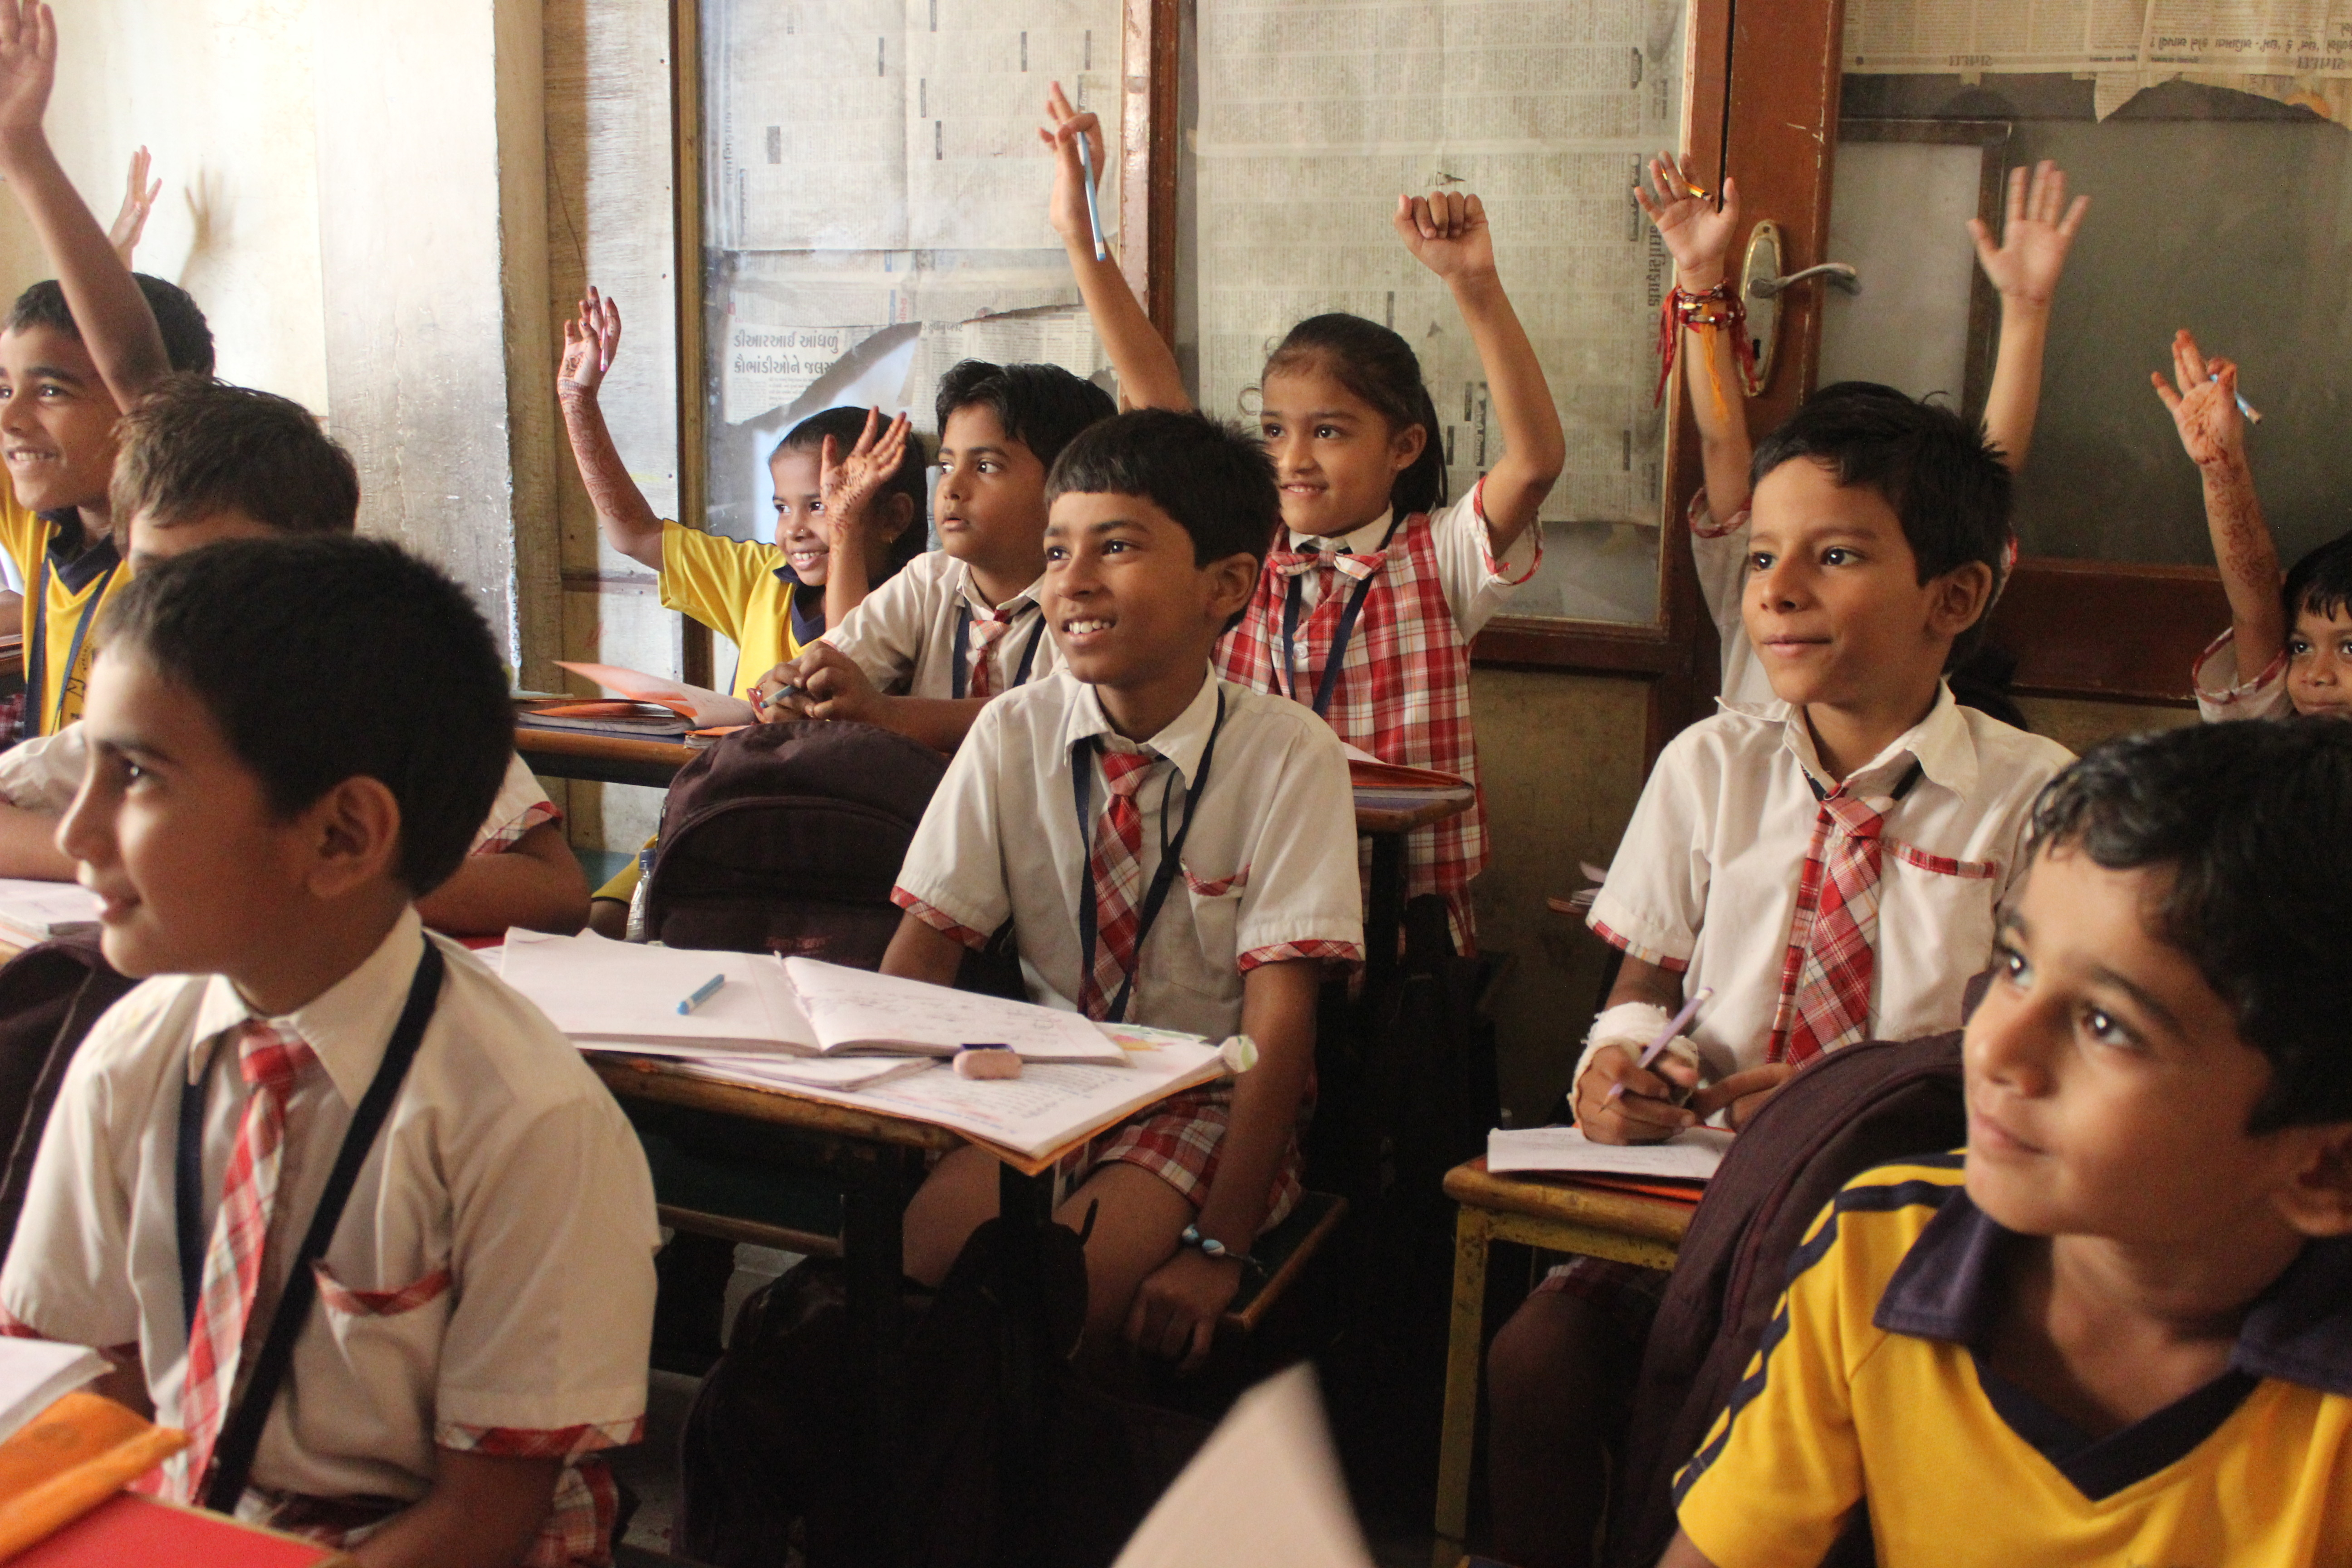 Take 50 poor kids from streets to school in India ...